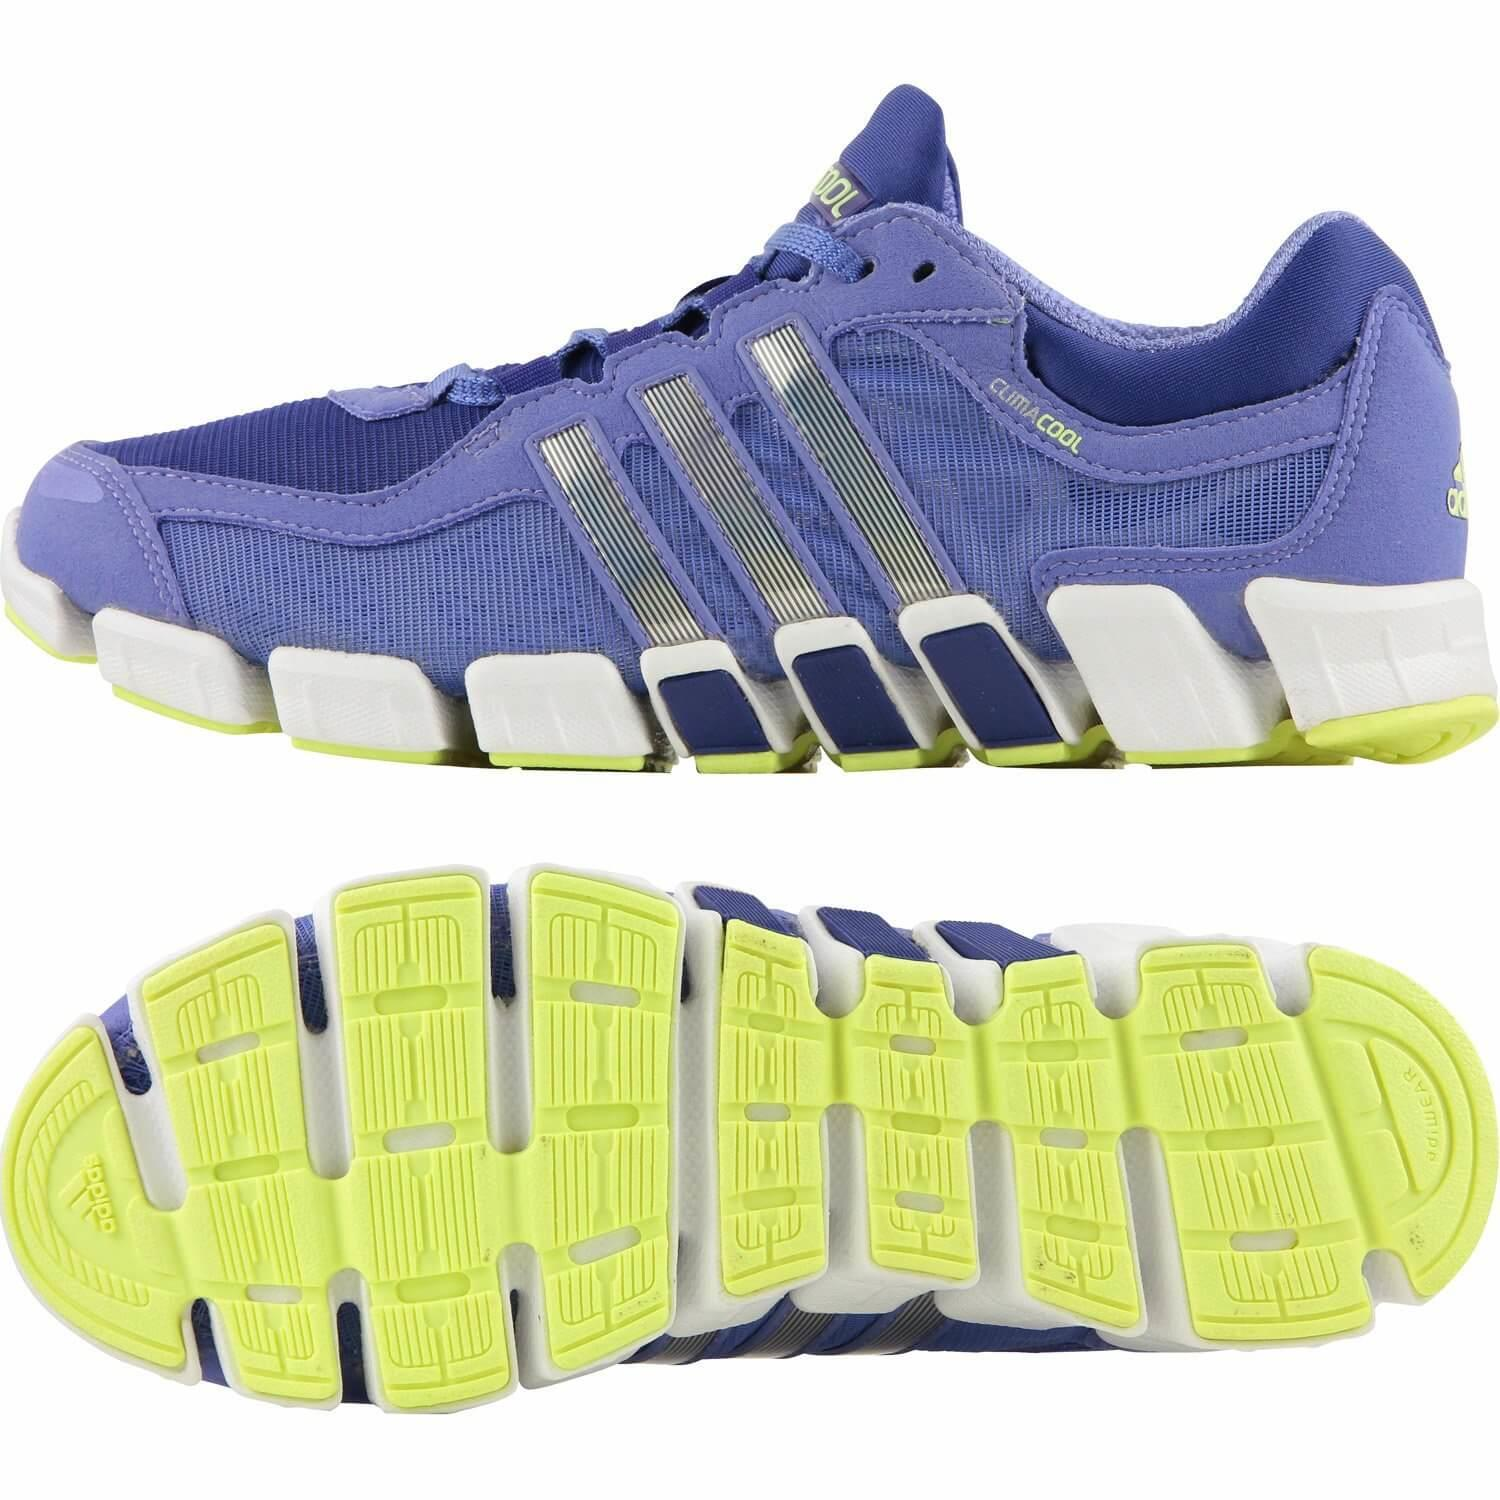 Bright and complimentary colors give the Adidas Climacool Freshride a stylish appearance